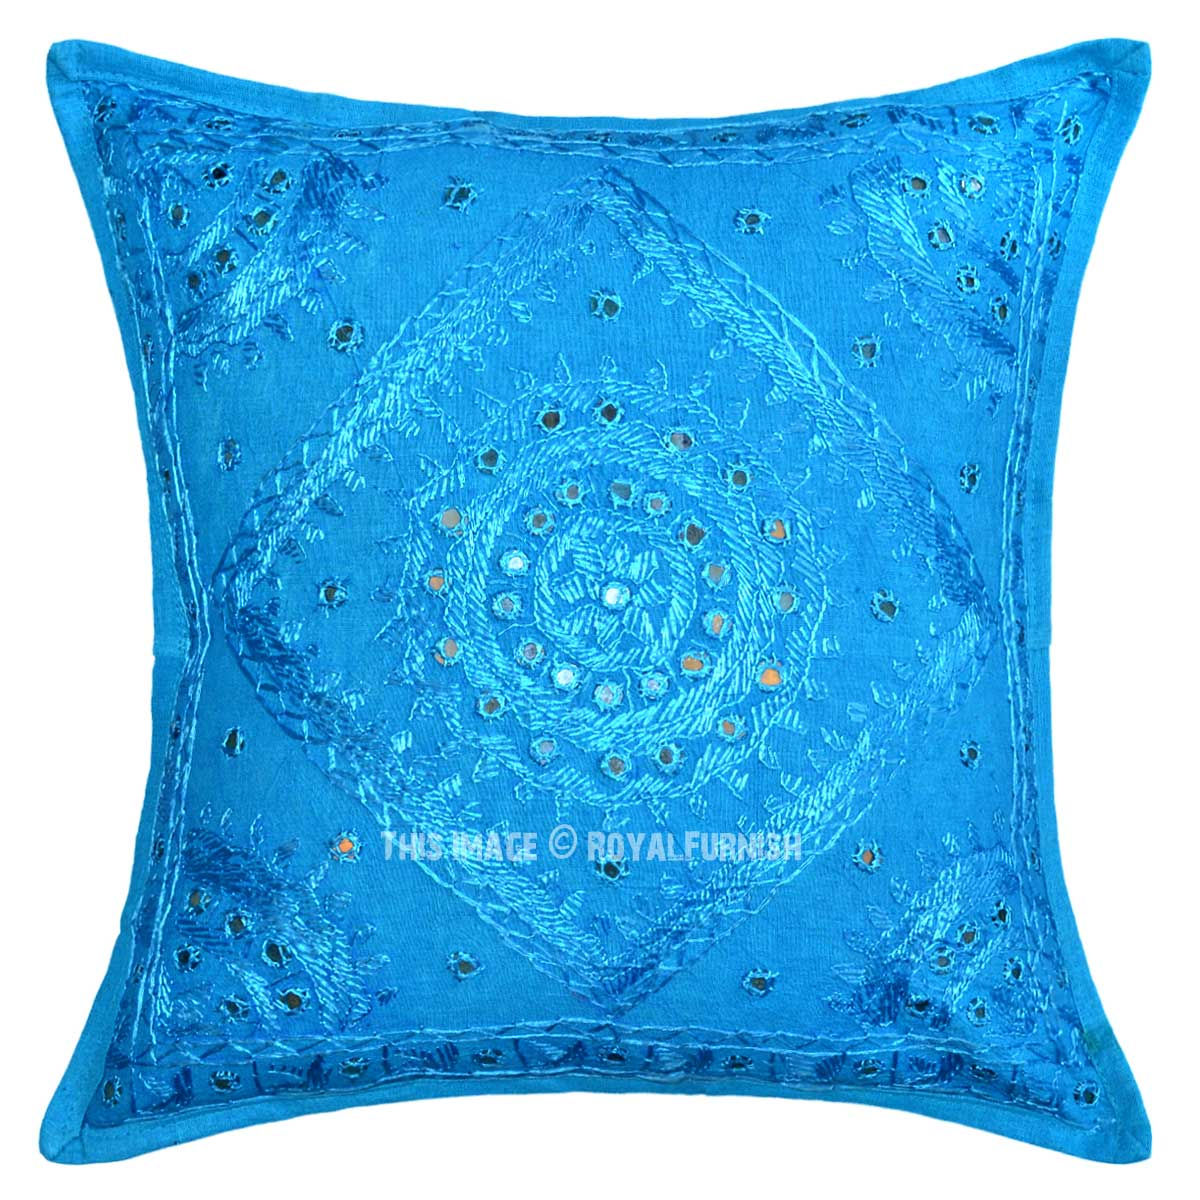 Decorative Pillows In Turquoise : 16X16 Turquoise Blue Decorative Bohemian Accent Mirrored Pillow Cover - RoyalFurnish.com